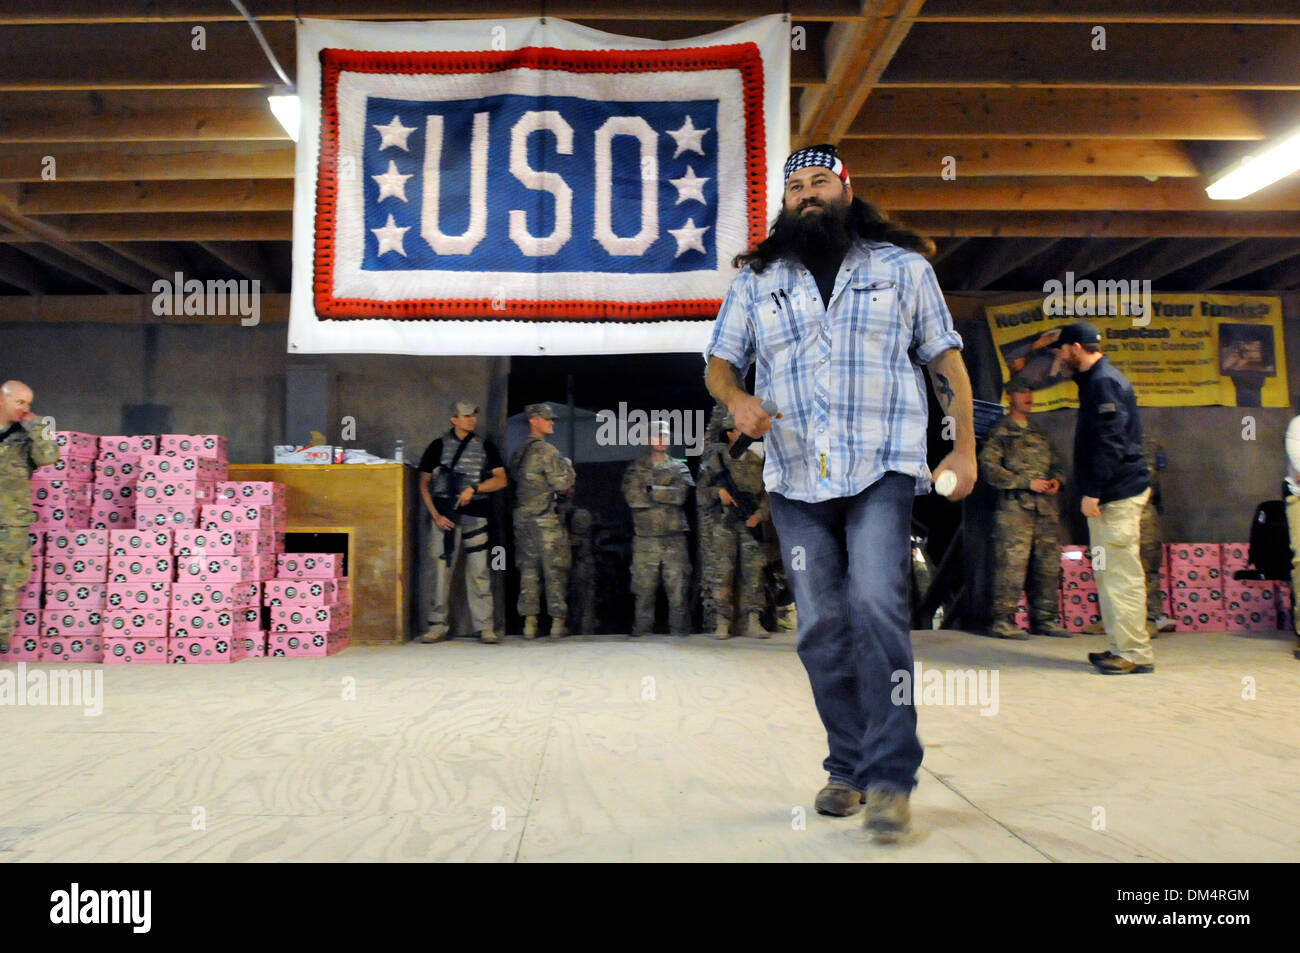 Camp Leatherneck, Helmand, Afghanistan. 10th December 2013. Duck Dynasty reality television star Willie Robertson walks on stage December 10, 2013 at Kandahar Airfield, Kandahar province, Afghanistan. The visit was part of the USO Holiday Tour. Credit:  Planetpix/Alamy Live News - Stock Image